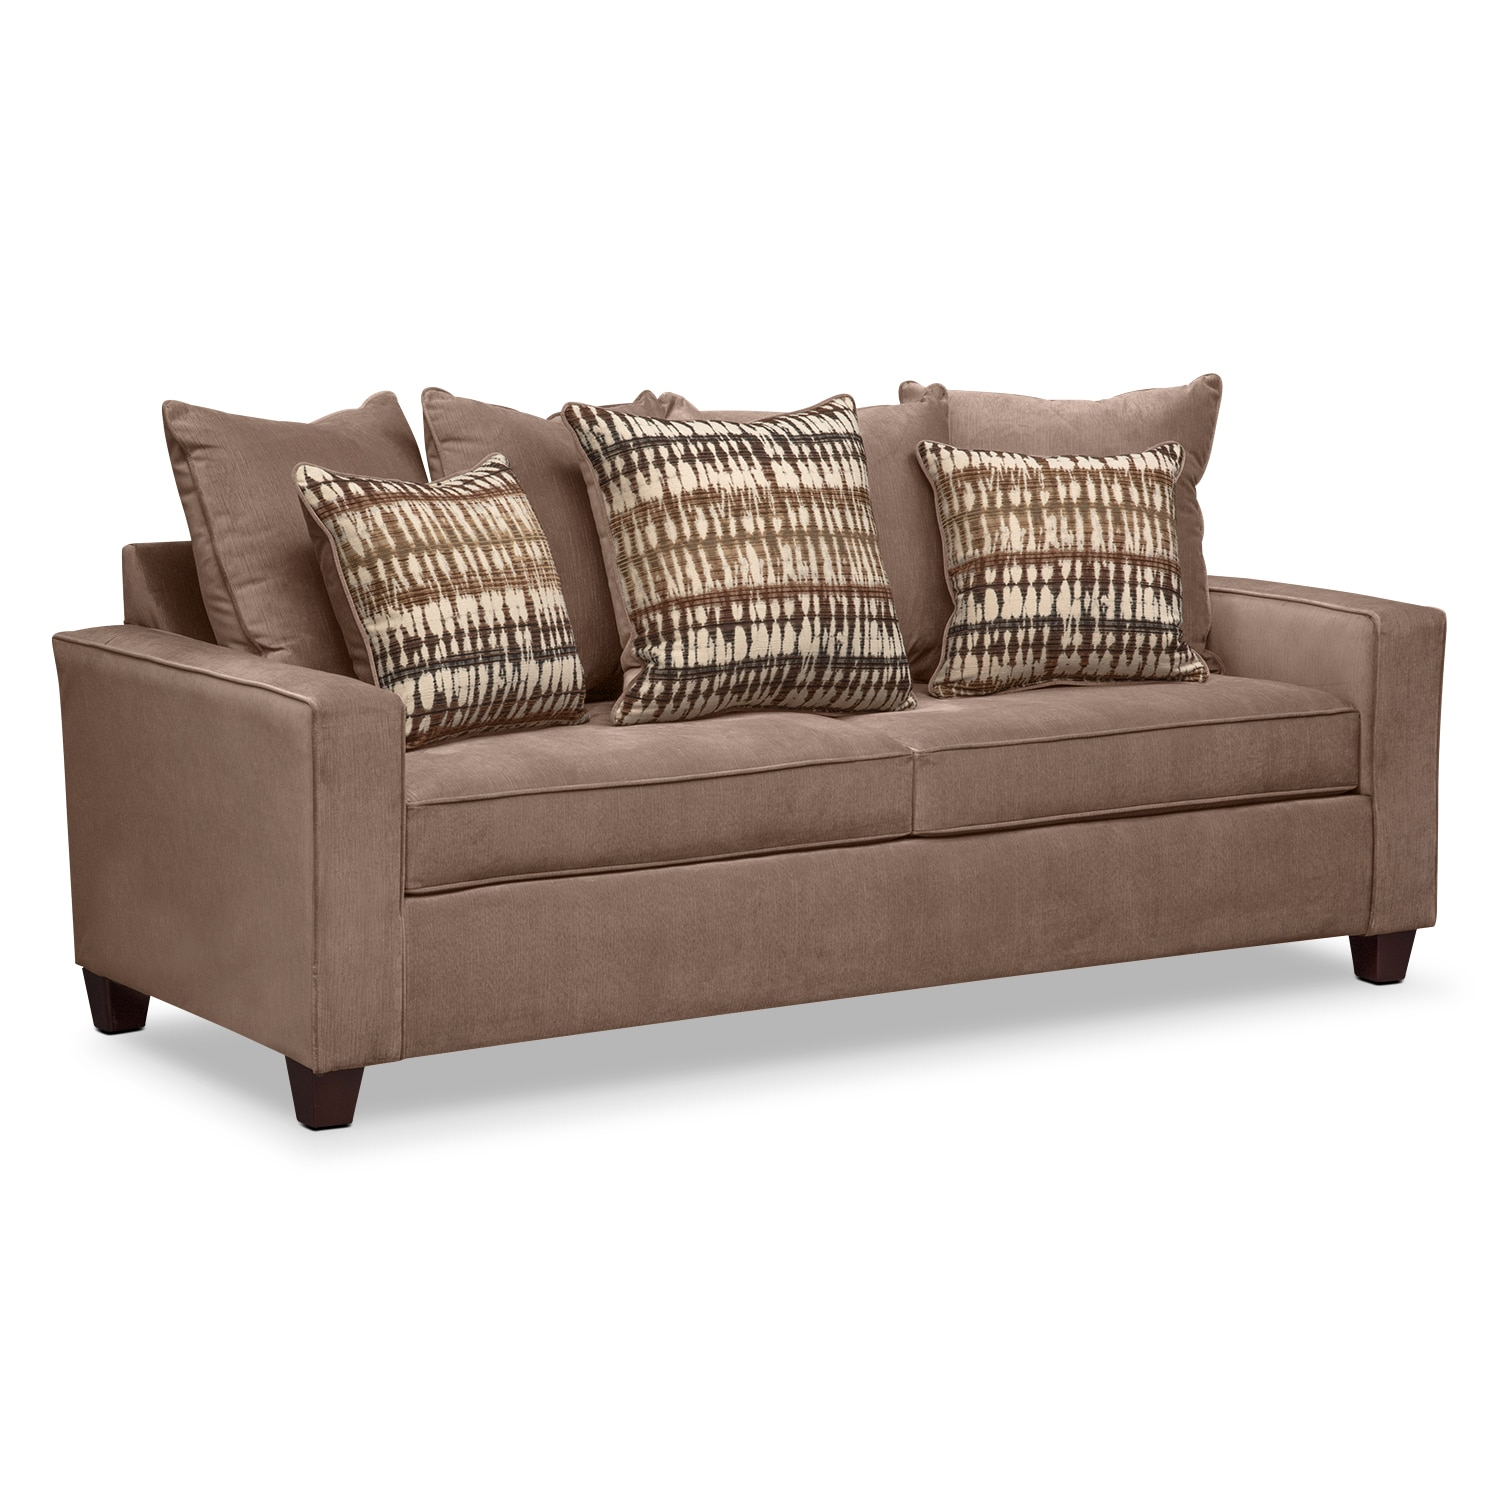 Living Room Furniture - Bryden Queen Memory Foam Sleeper Sofa - Chocolate